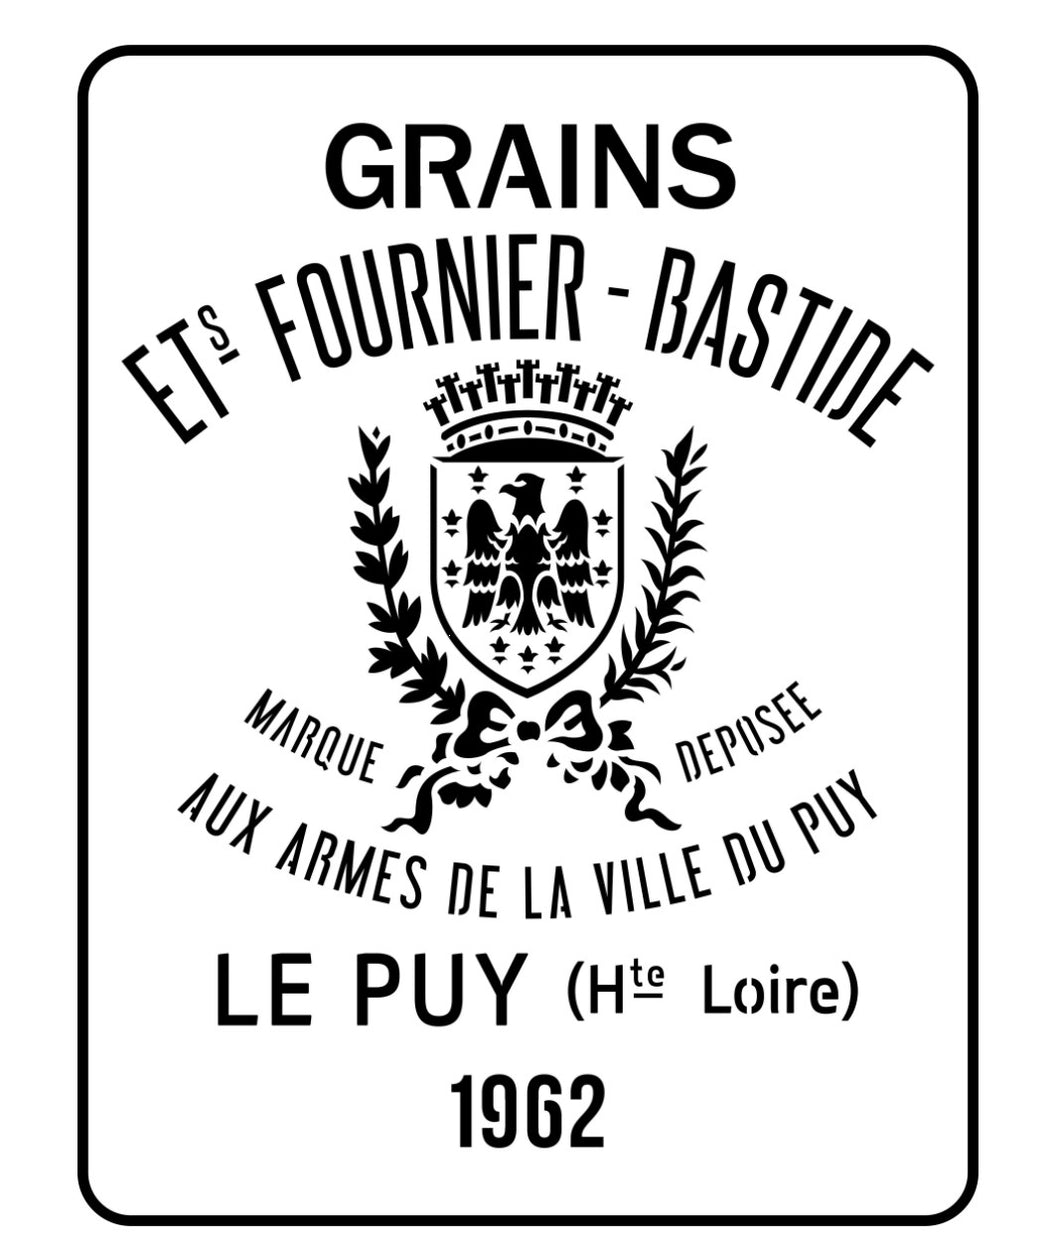 JRV Grains Fournier